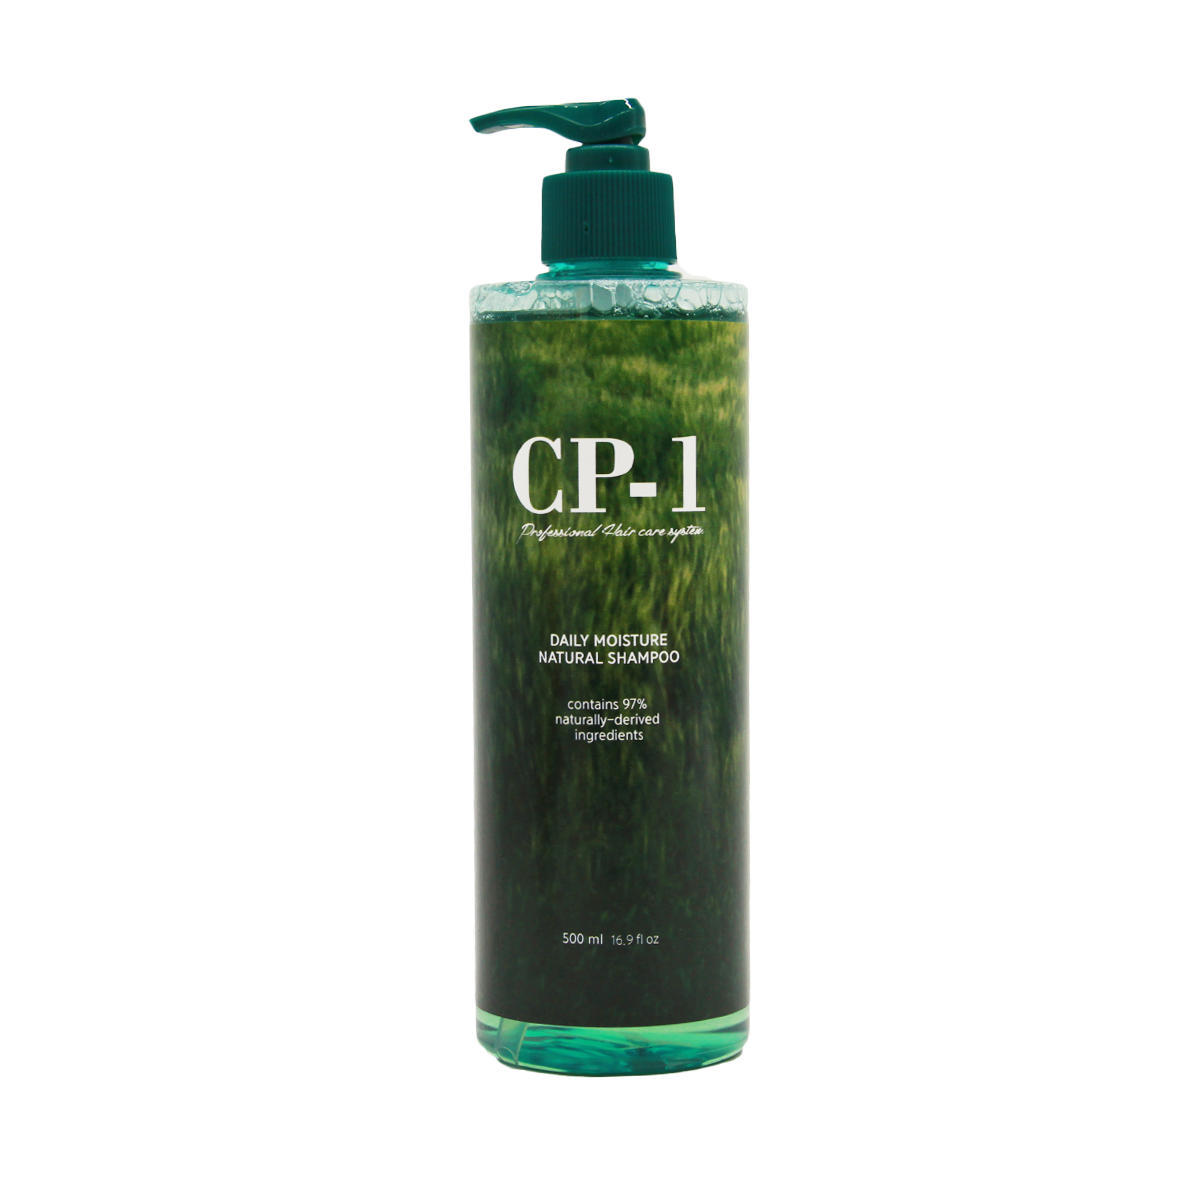 Для волос Шампунь для волос Esthetic House CP-1 Daily Moisture Natural Shampoo, 500 мл import_files_8b_8b2d76525ab311e980fb3408042974b1_8b2d76535ab311e980fb3408042974b1.jpg